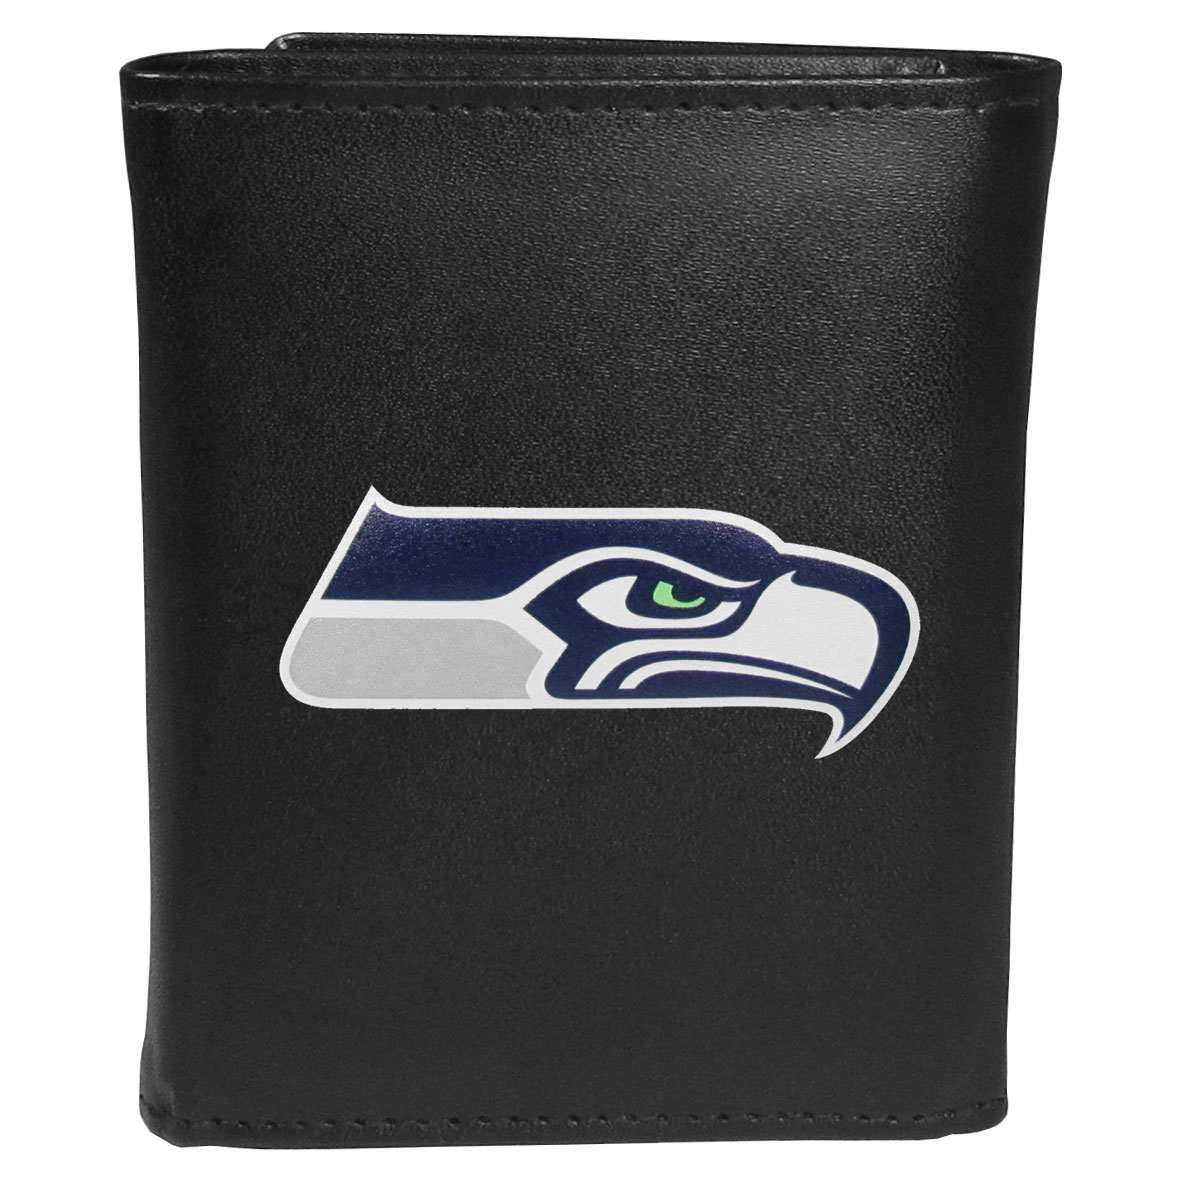 Seattle Seahawks Leather Tri-fold Wallet, Large Logo - Our classic fine leather tri-fold wallet is meticulously crafted with genuine leather that will age beautifully so you will have a quality wallet for years to come. This is fan apparel at its finest. The wallet is packed with organizational  features; lots of credit card slots, large billfold pocket, and a window ID slot. The front of the wallet features an extra large Seattle Seahawks printed logo.